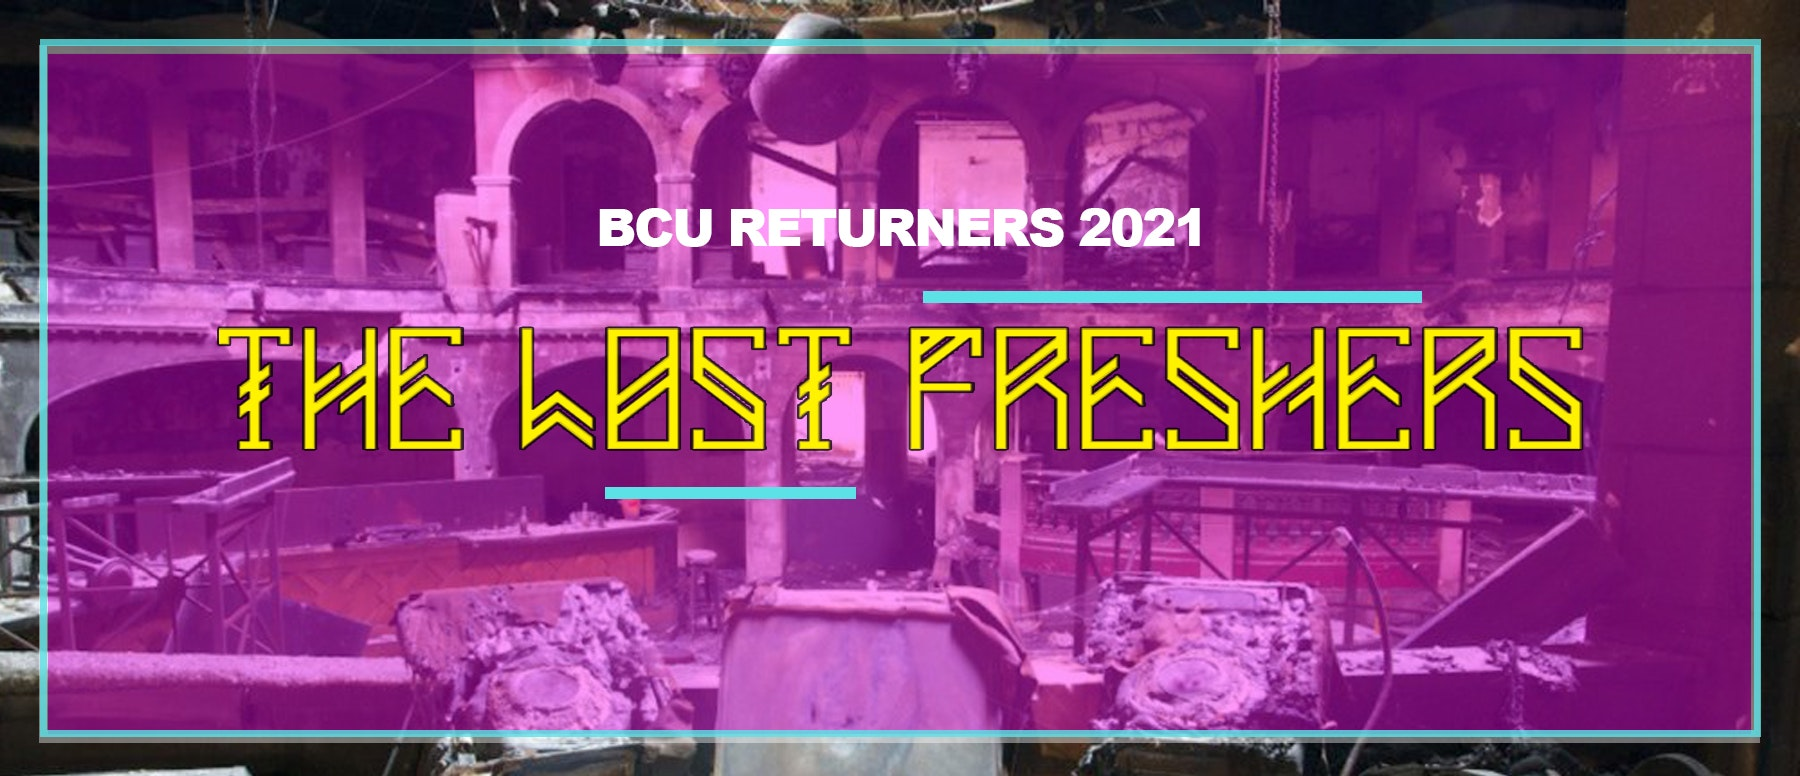 BCU Returners 2021 X THE LOST FRESHERS WEEK WRISTBAND! Includes 6 events + Naughty Horse Term 1 Tuesday Pass!